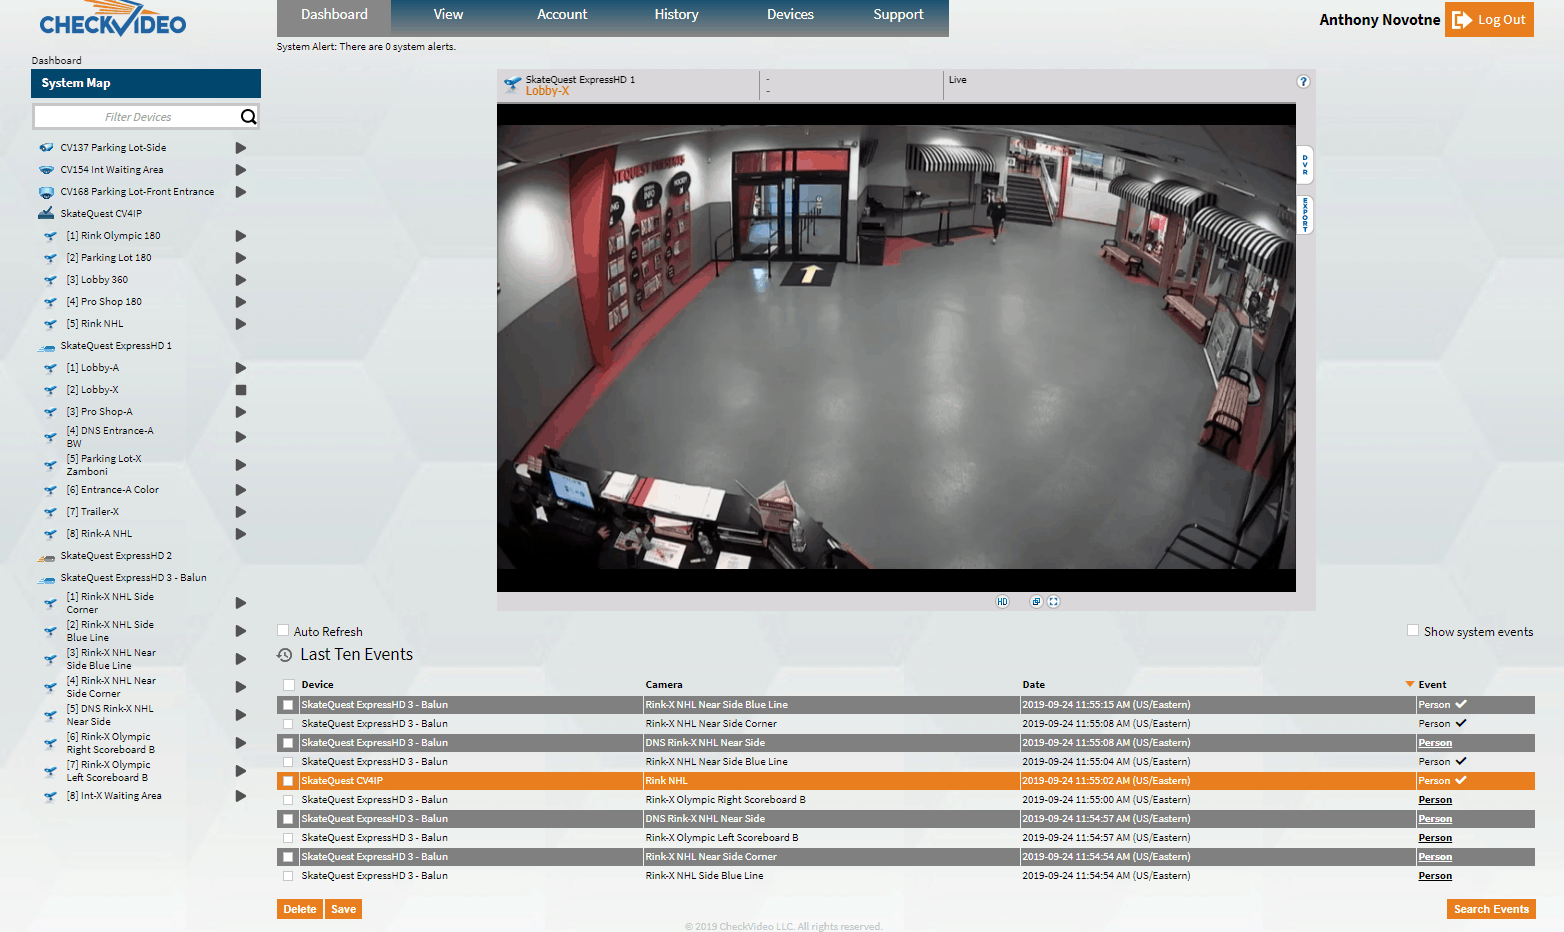 CheckVideo Video Surveillance Portal